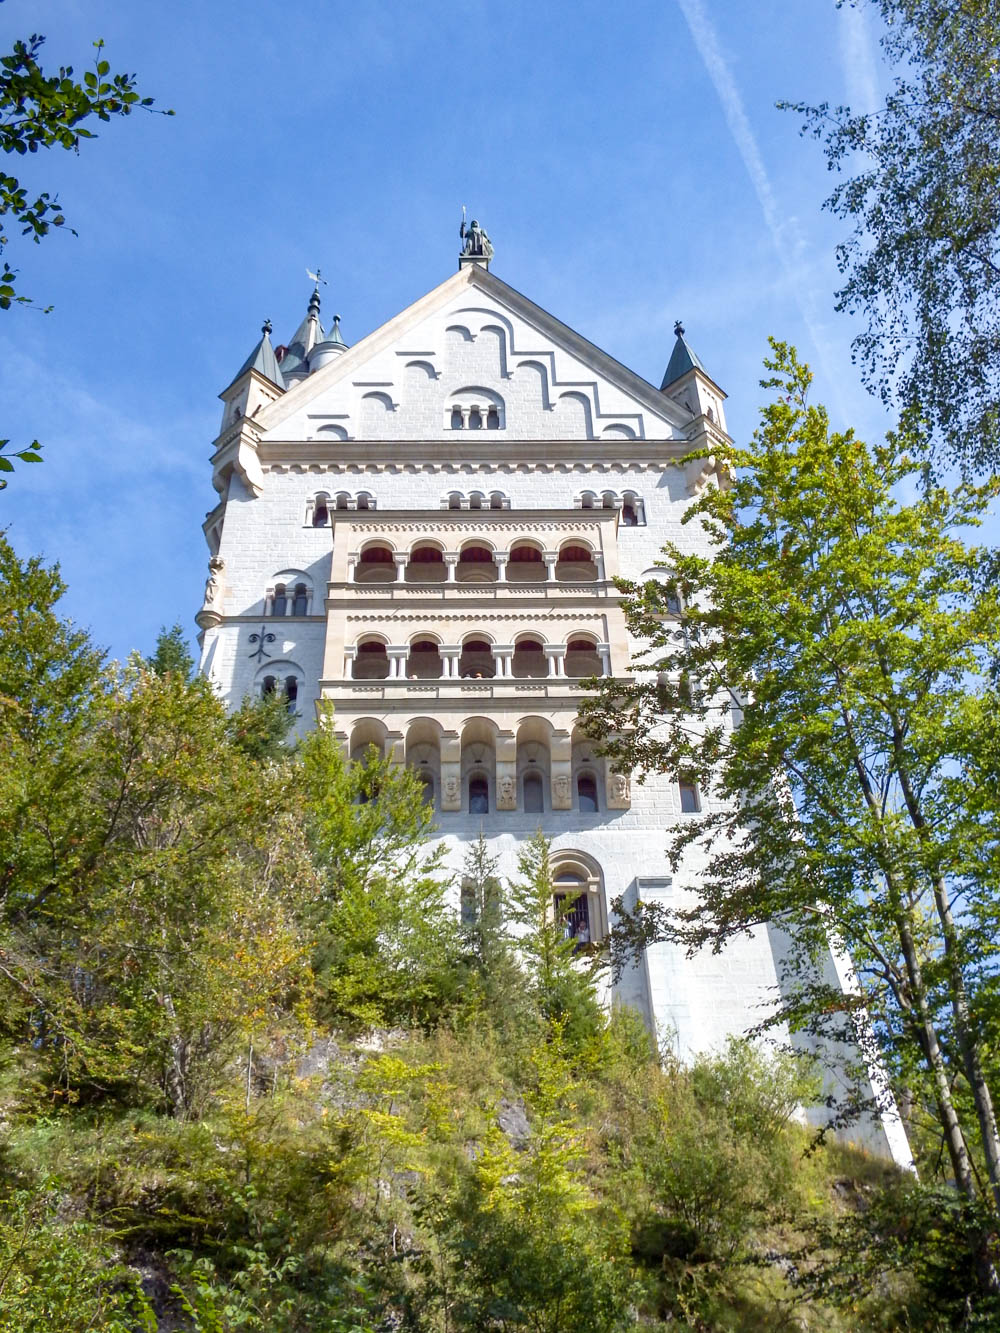 Back side | 10 Crucial Tips to Visit Neuschwanstein Castle Skillfully and Worry-Free | Tips for visiting Neuschwanstein Castle in Bavaria, Germany | Neuschwanstein Castle tour tickets